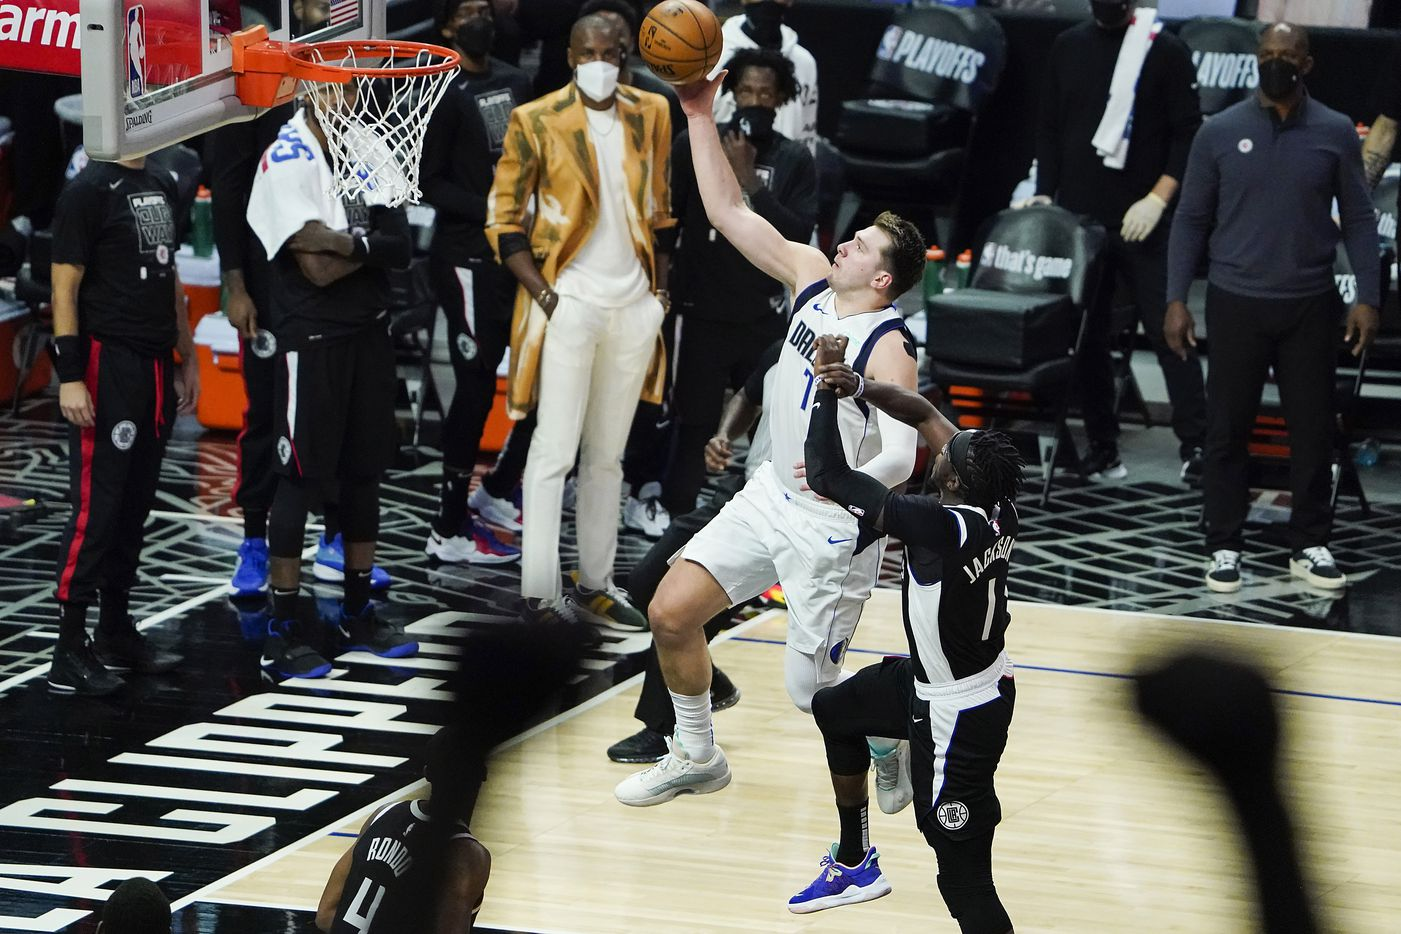 Dallas Mavericks guard Luka Doncic (77) drives for a layup past LA Clippers guard Reggie Jackson (1) during the third quarter of an NBA playoff basketball game at the Staples Center on Wednesday, June 2, 2021, in Los Angeles.  (Smiley N. Pool/The Dallas Morning News)